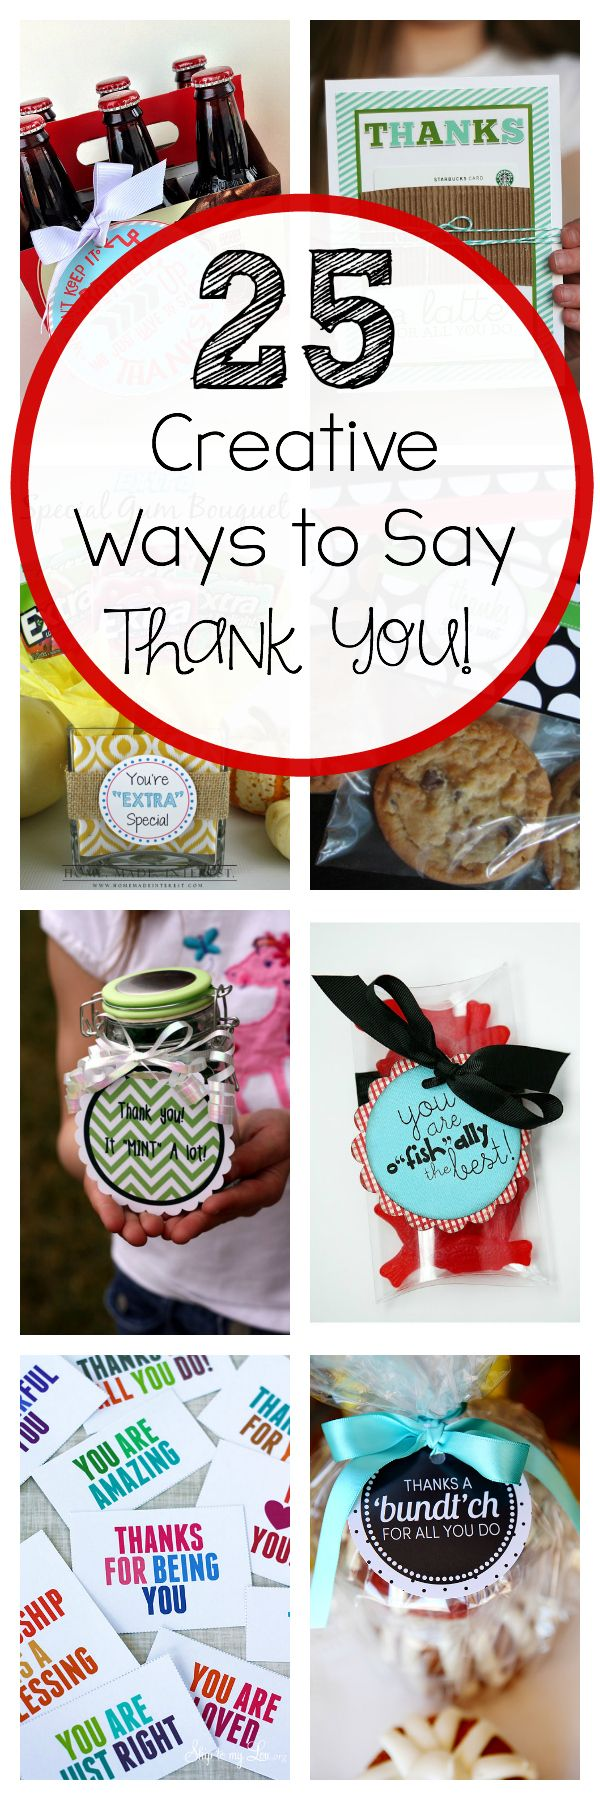 Here are 25 fun and creative ways to say thank you!